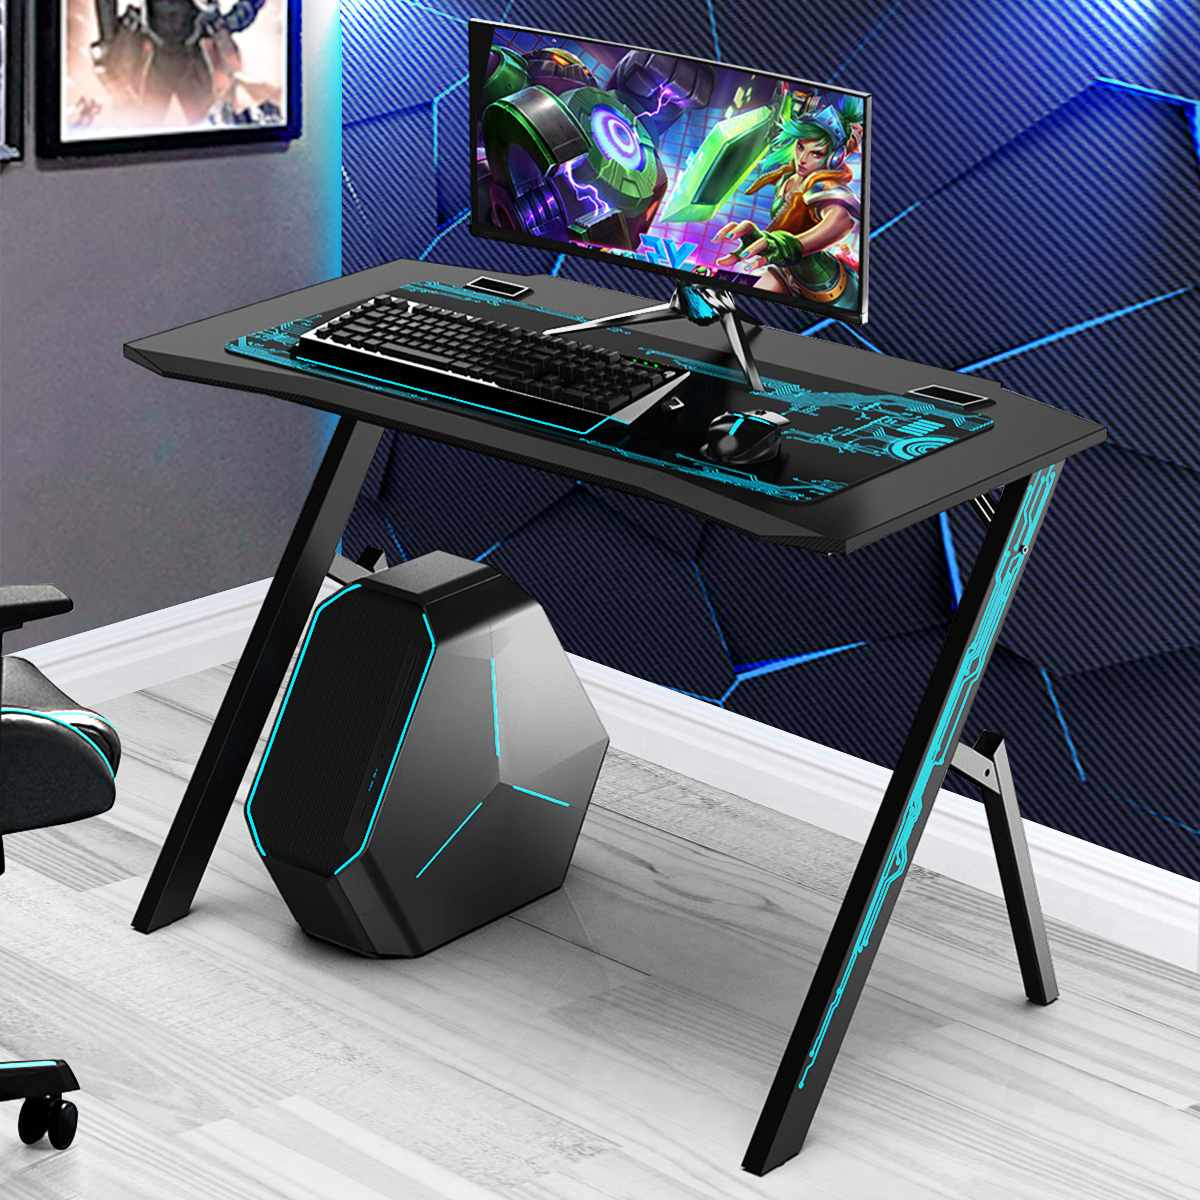 Get NEW 43.3″ Professional Gaming Desk Table Cool Computer Desktop Home Supplies Office Desk Chair With Mouse Pad